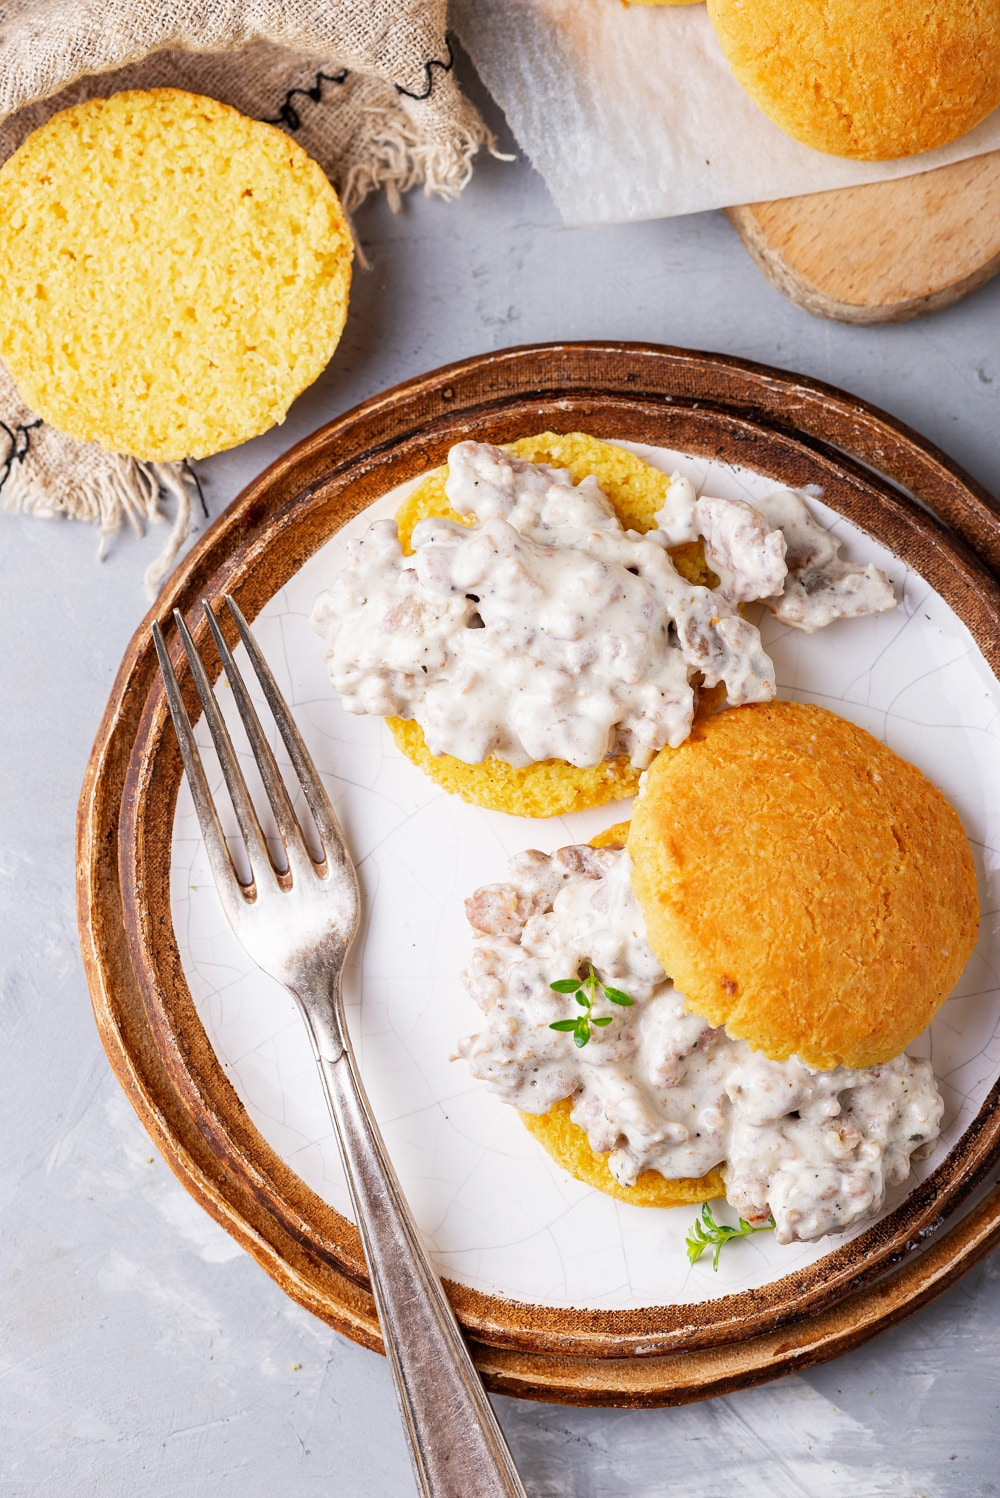 Biscuits covered in gravy on a plate. There is a fork on the plate, and more biscuits are by the plate as well.